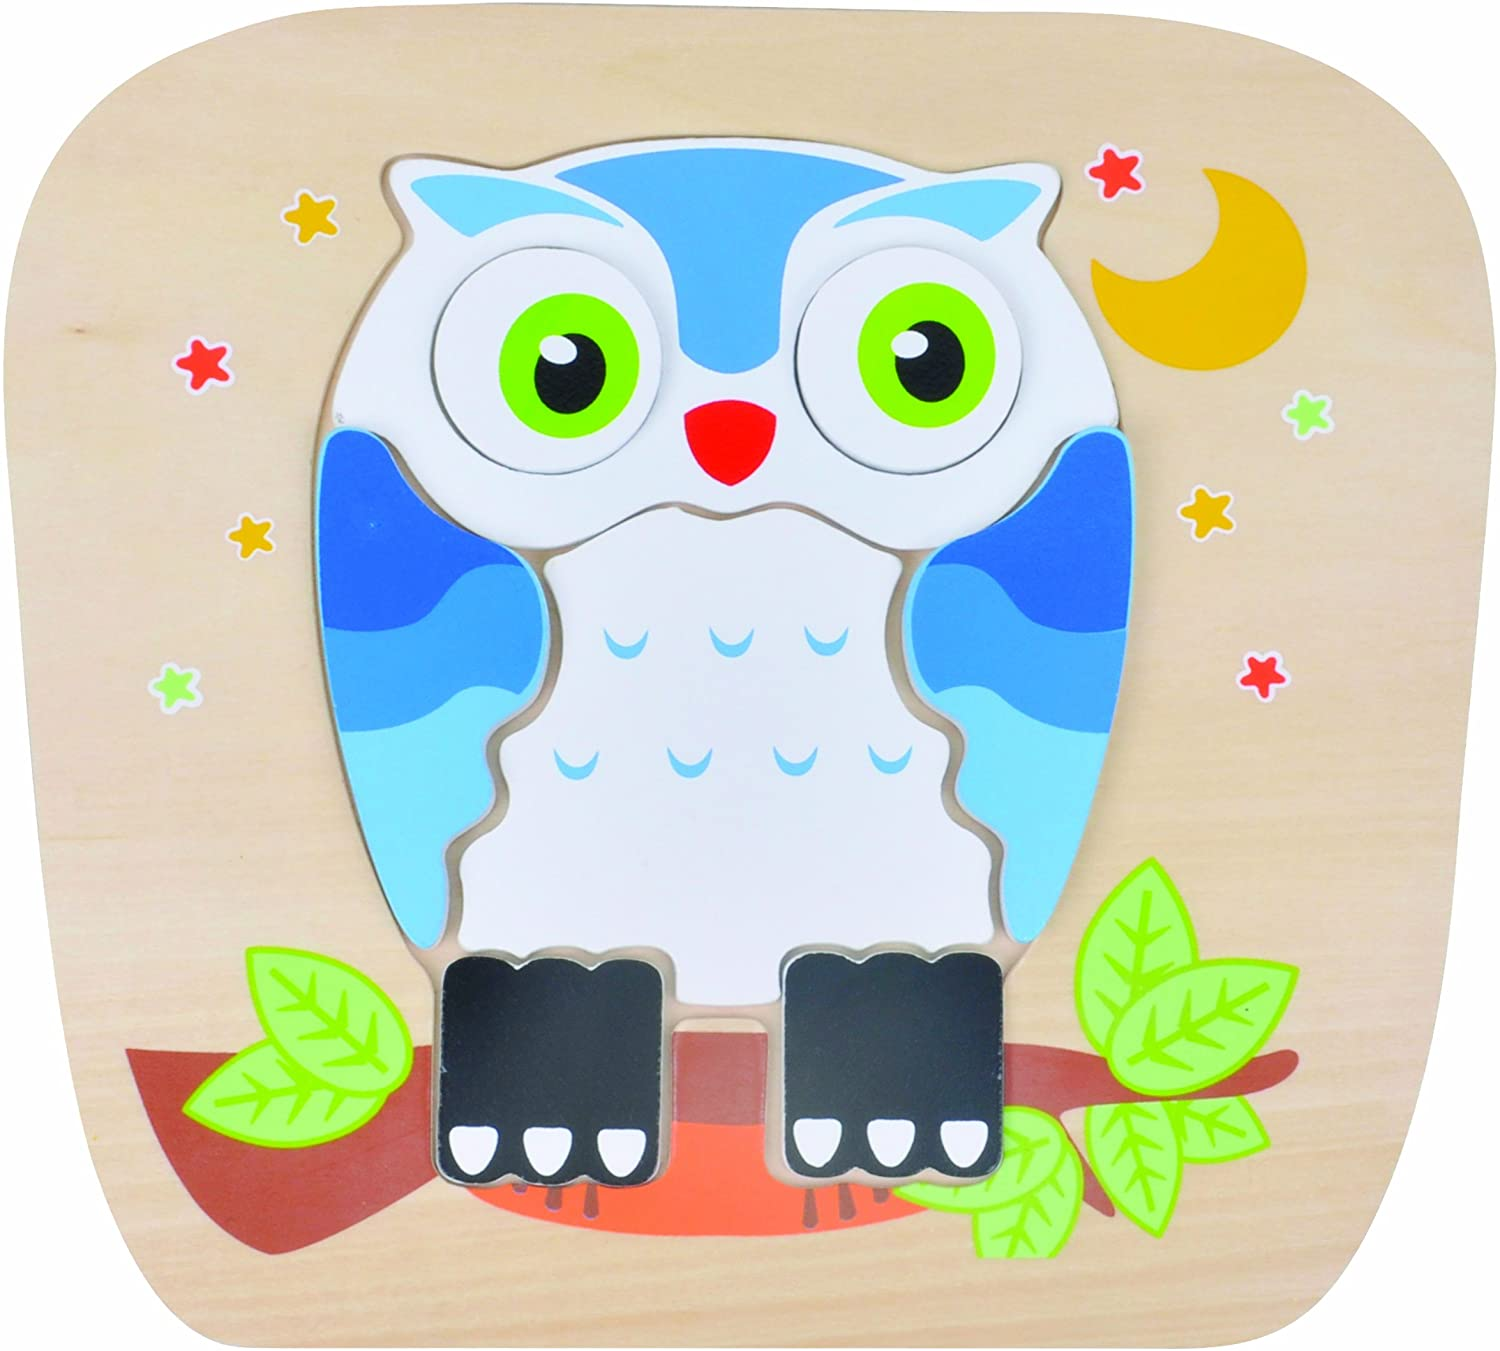 Discovery Toys Night OWL 2-Sided Interchangeable Wooden Puzzle| Kid-Powered Learning | STEM Educational Toy Learning & Childhood Development 2 Years and Up